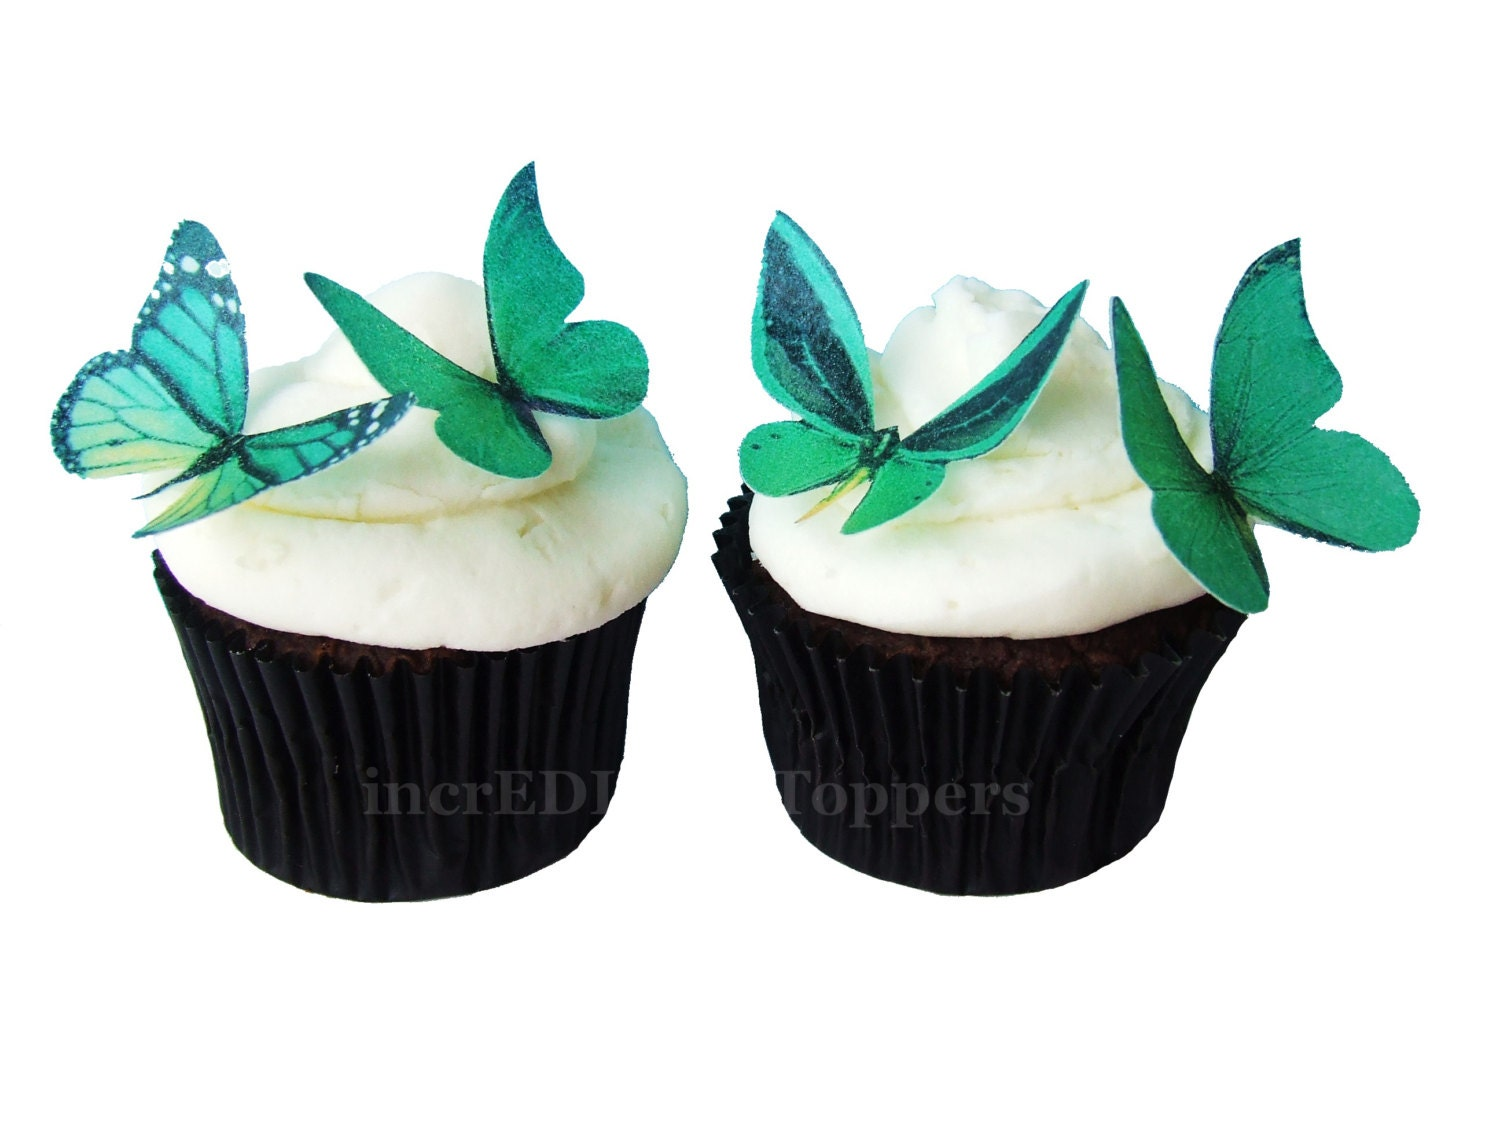 Edible Cake Top Decorations : Edible Cake Toppers EDIBLE BUTTERFLIES in 24 Green Cupcake